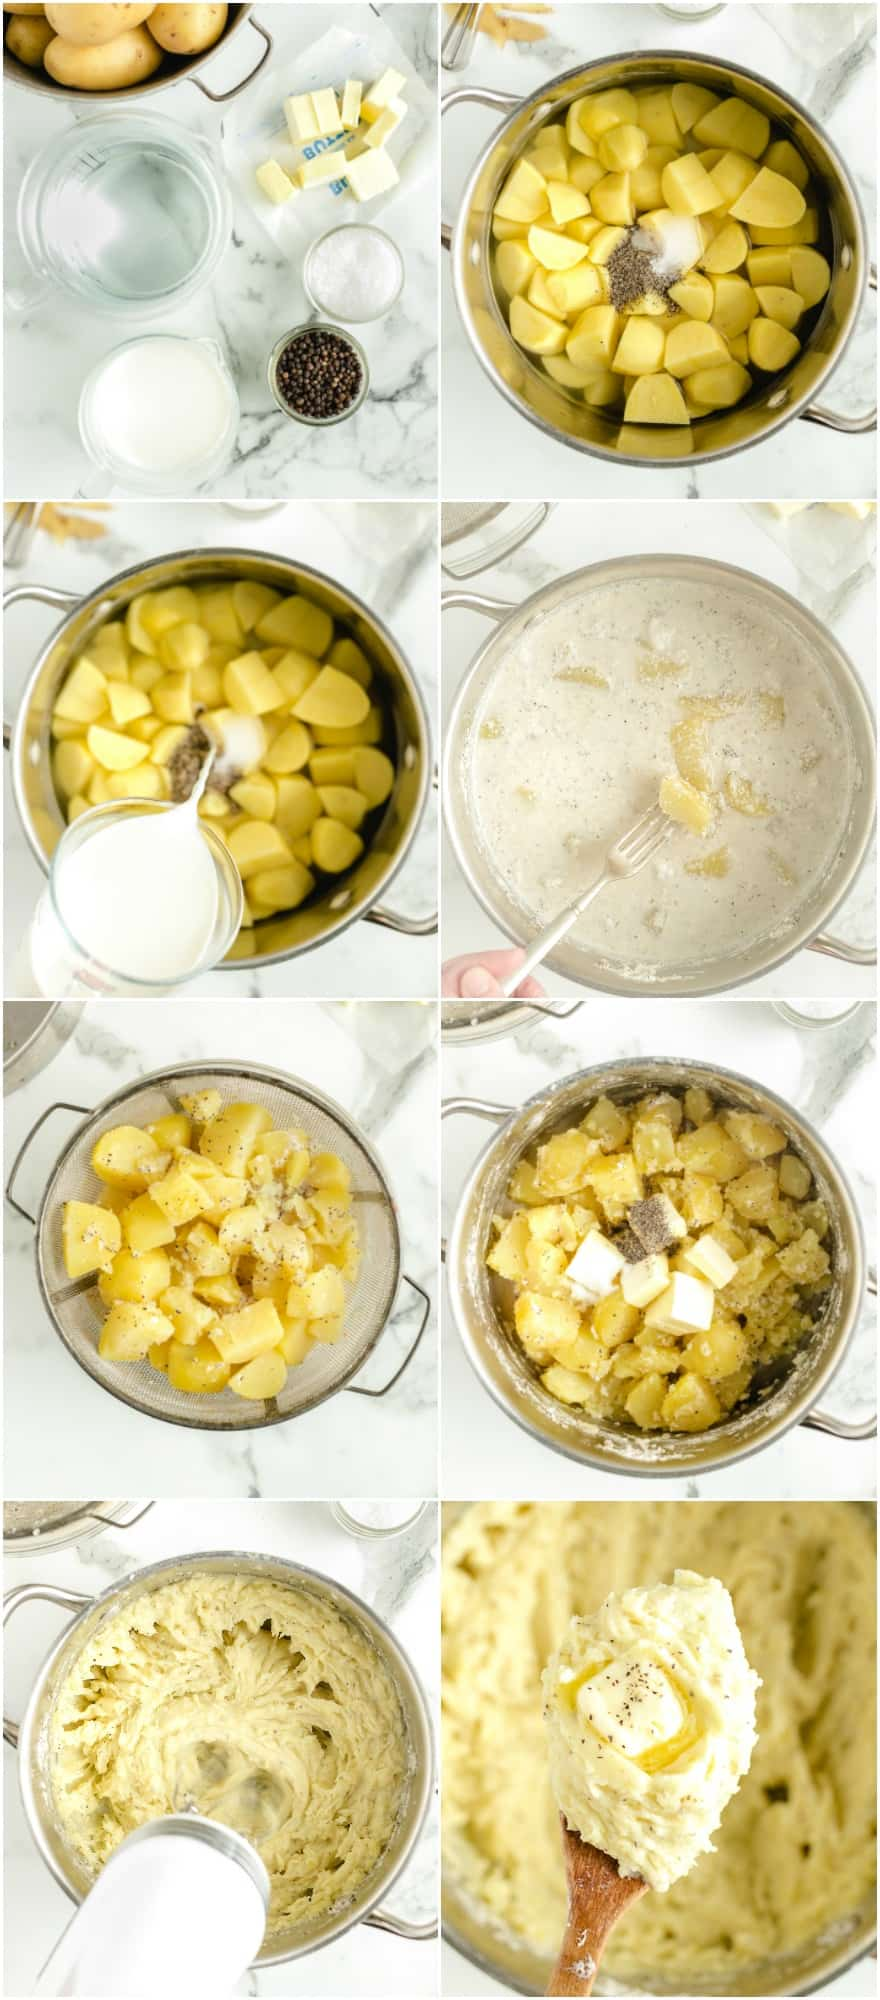 step by step photos of how to make mashed potatoes boiled in milk